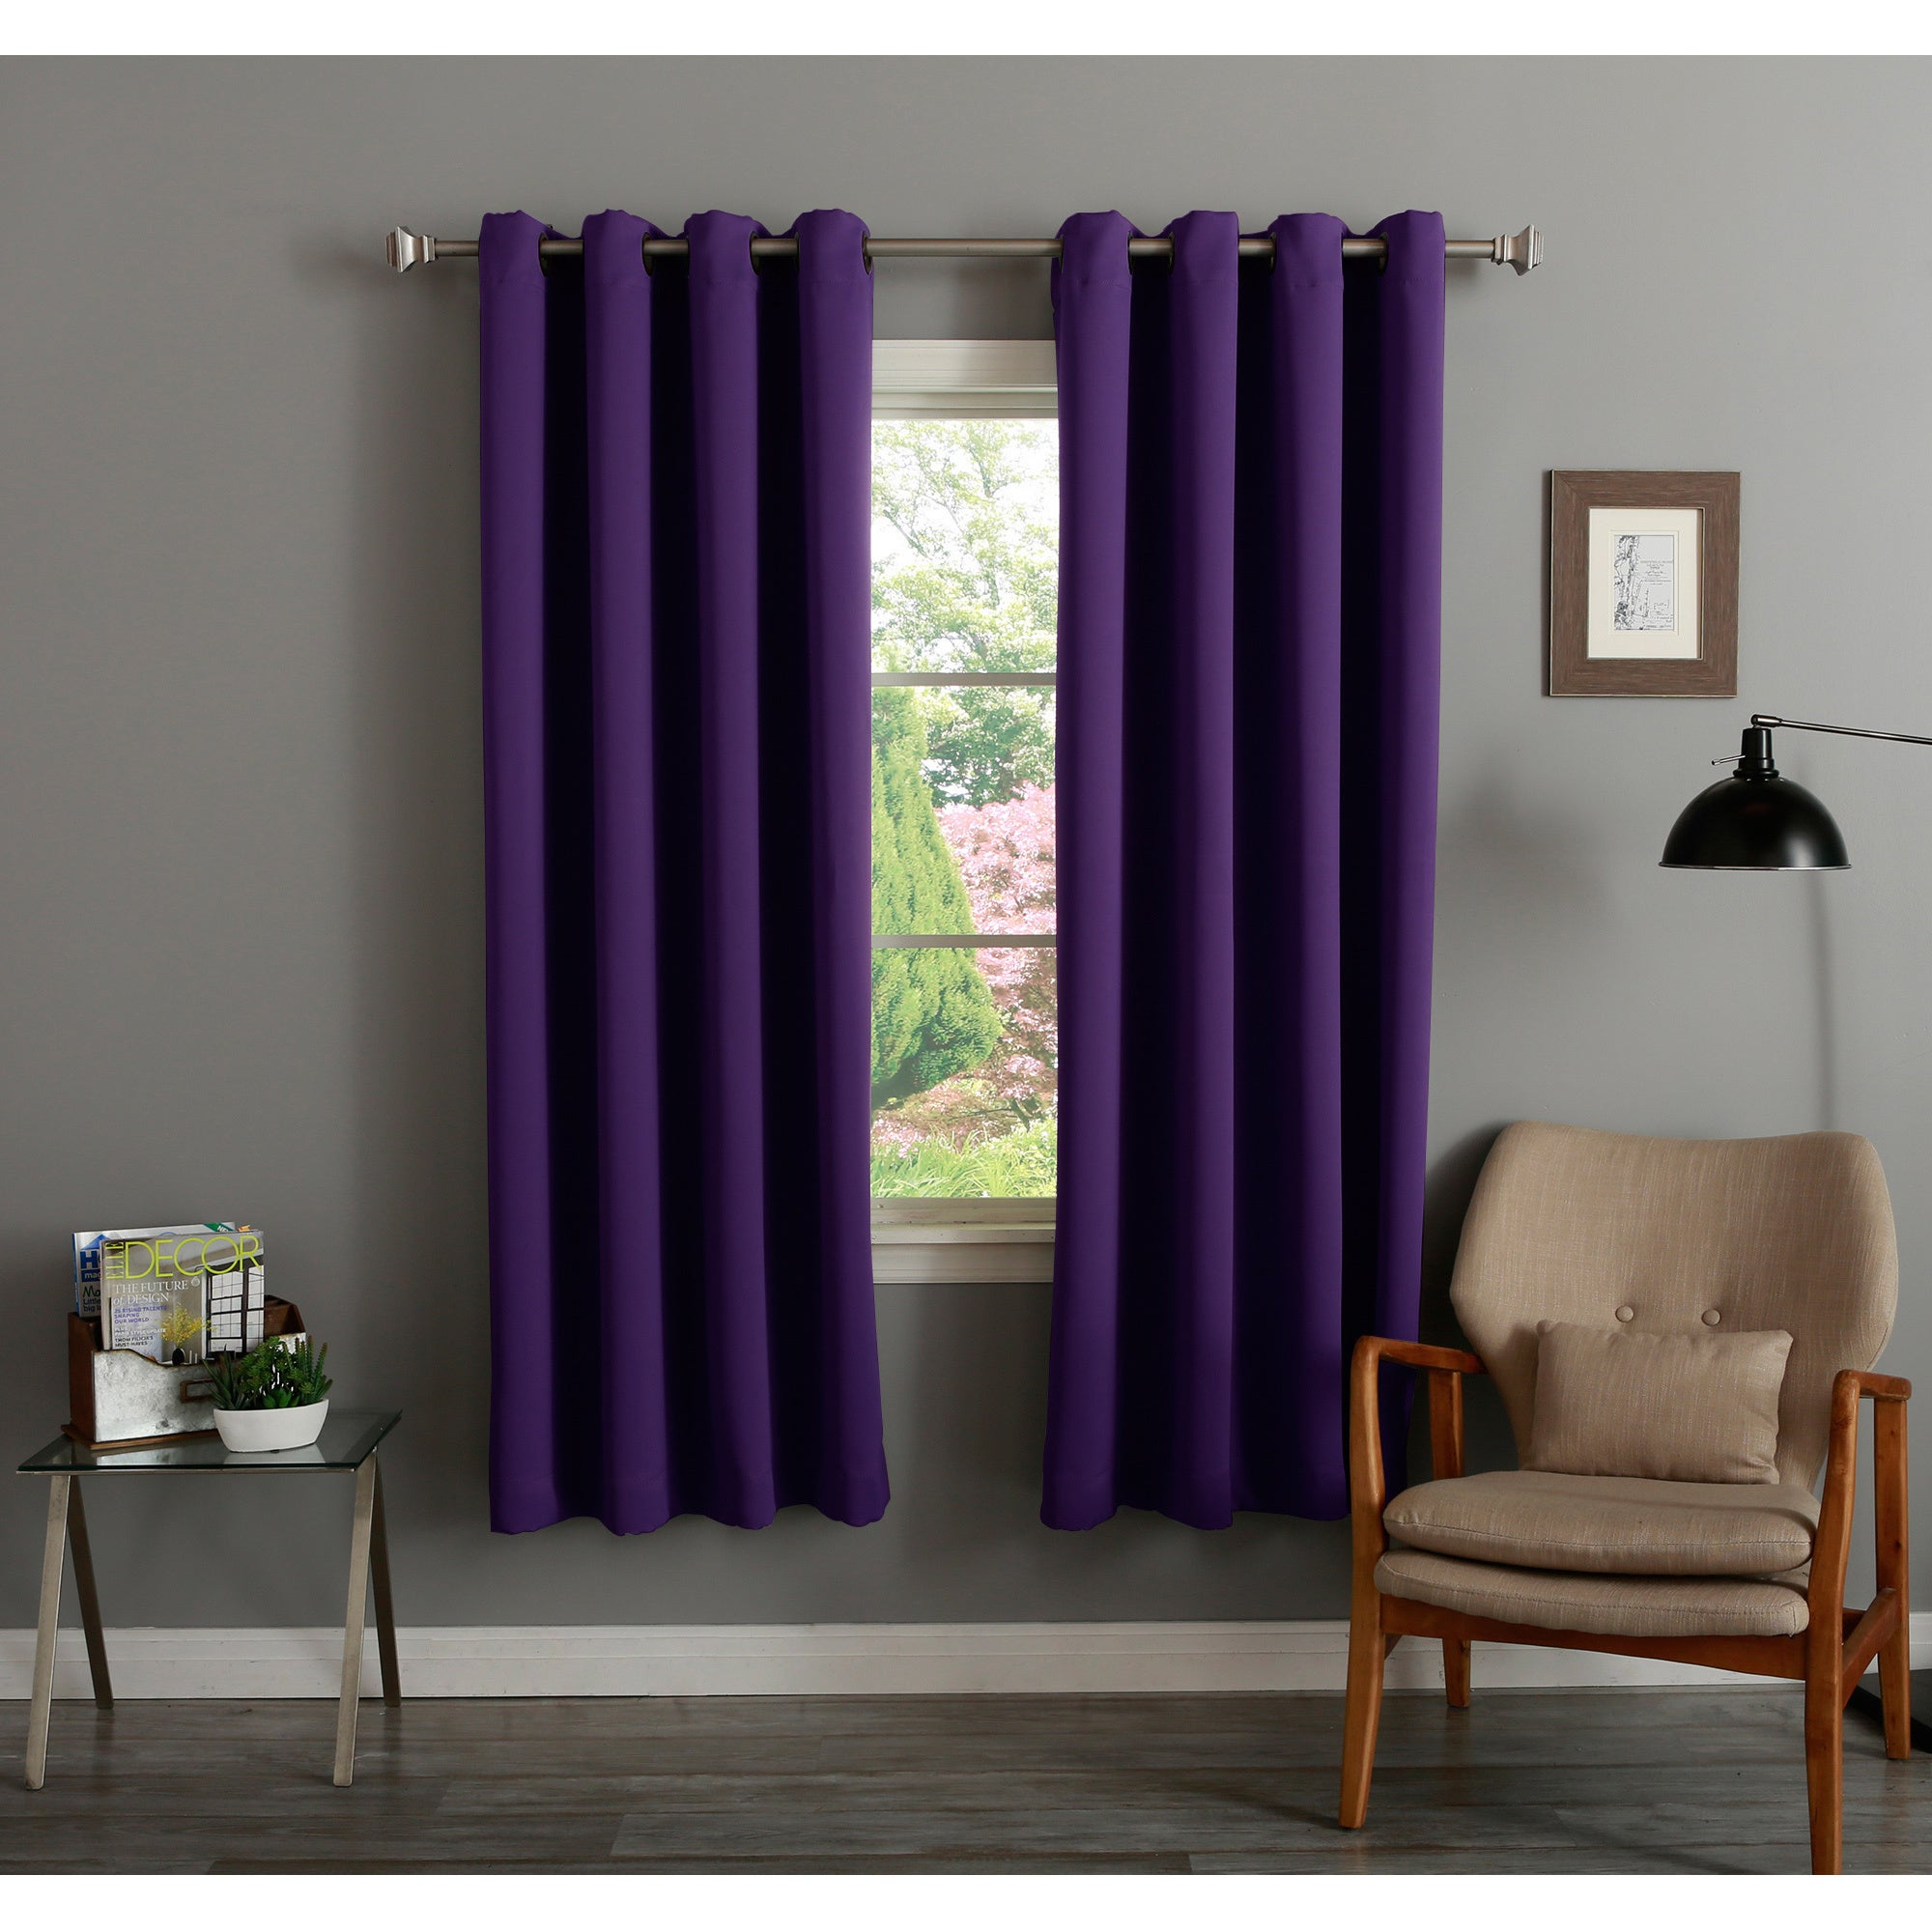 Aurora Home Insulated 72-inch Thermal Blackout Curtain